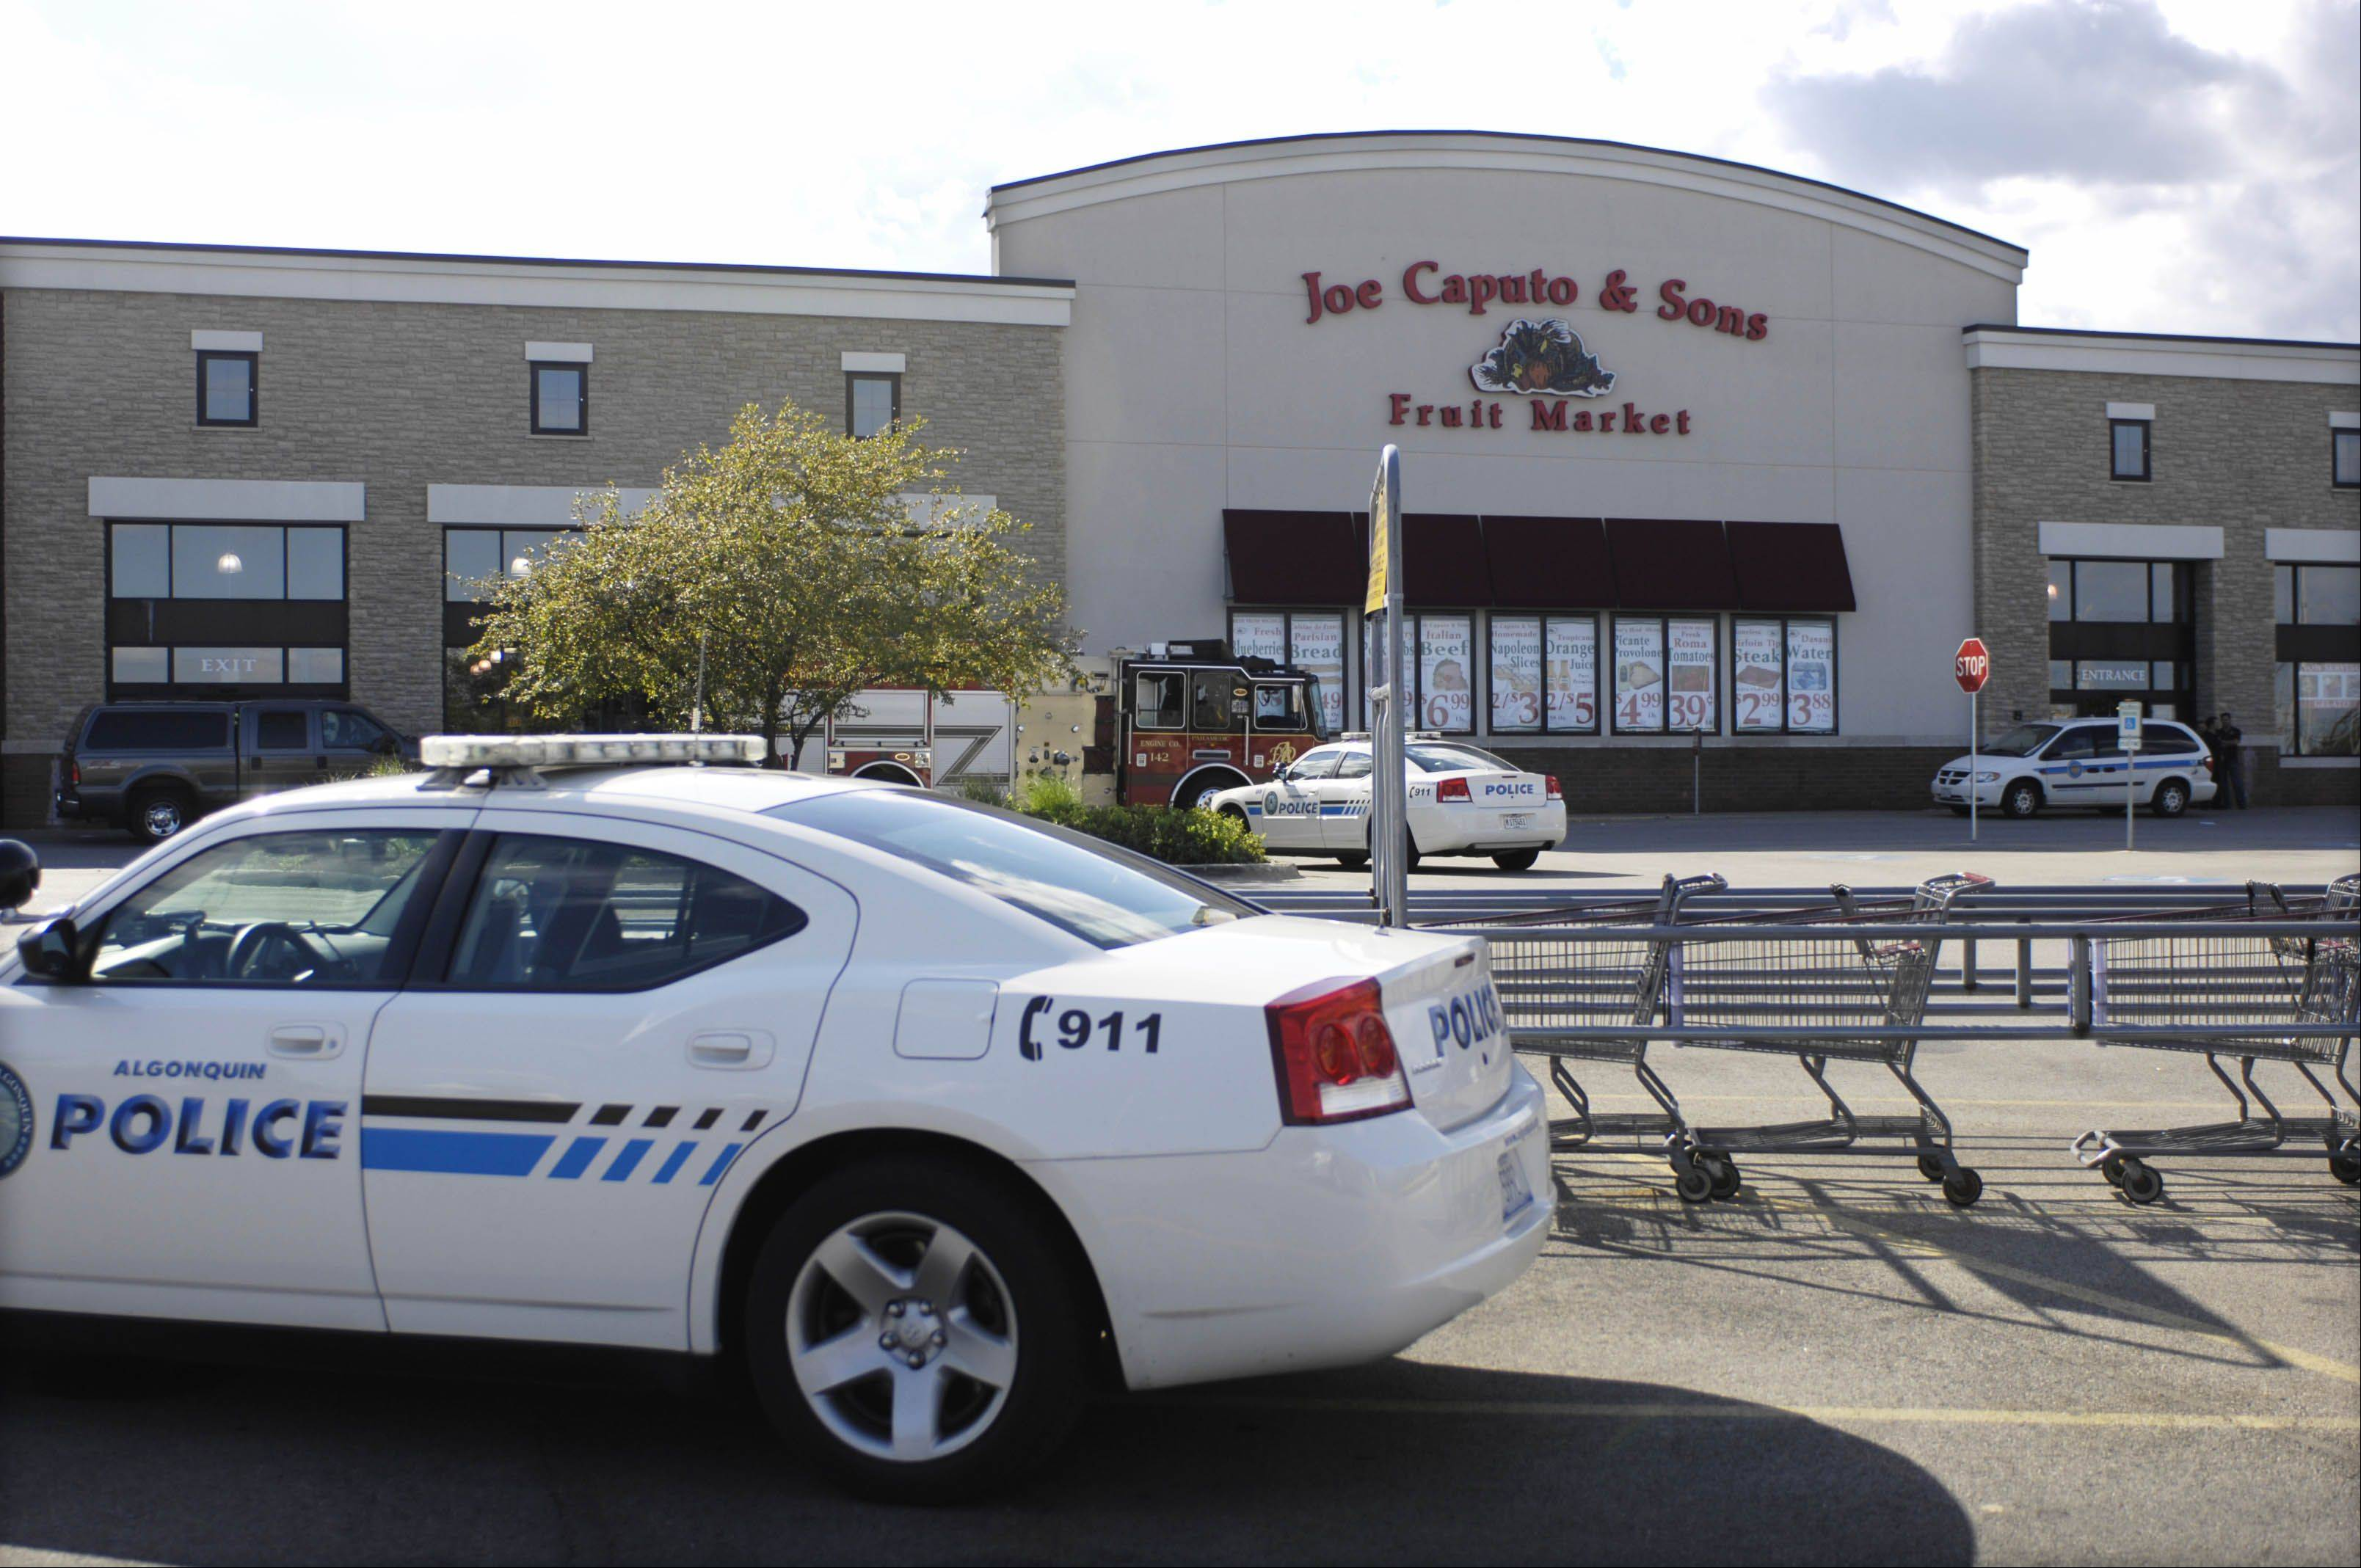 Police block off the parking lot of Joe Caputo & Sons Fruit Market Sunday on Randall Road in Algonquin after a man walked into the store with a Molotov cocktail and threw it into a crowd, injuring one shopper. A 24-year-old Sleepy Hollow man was arrested and charged with aggravated arson.